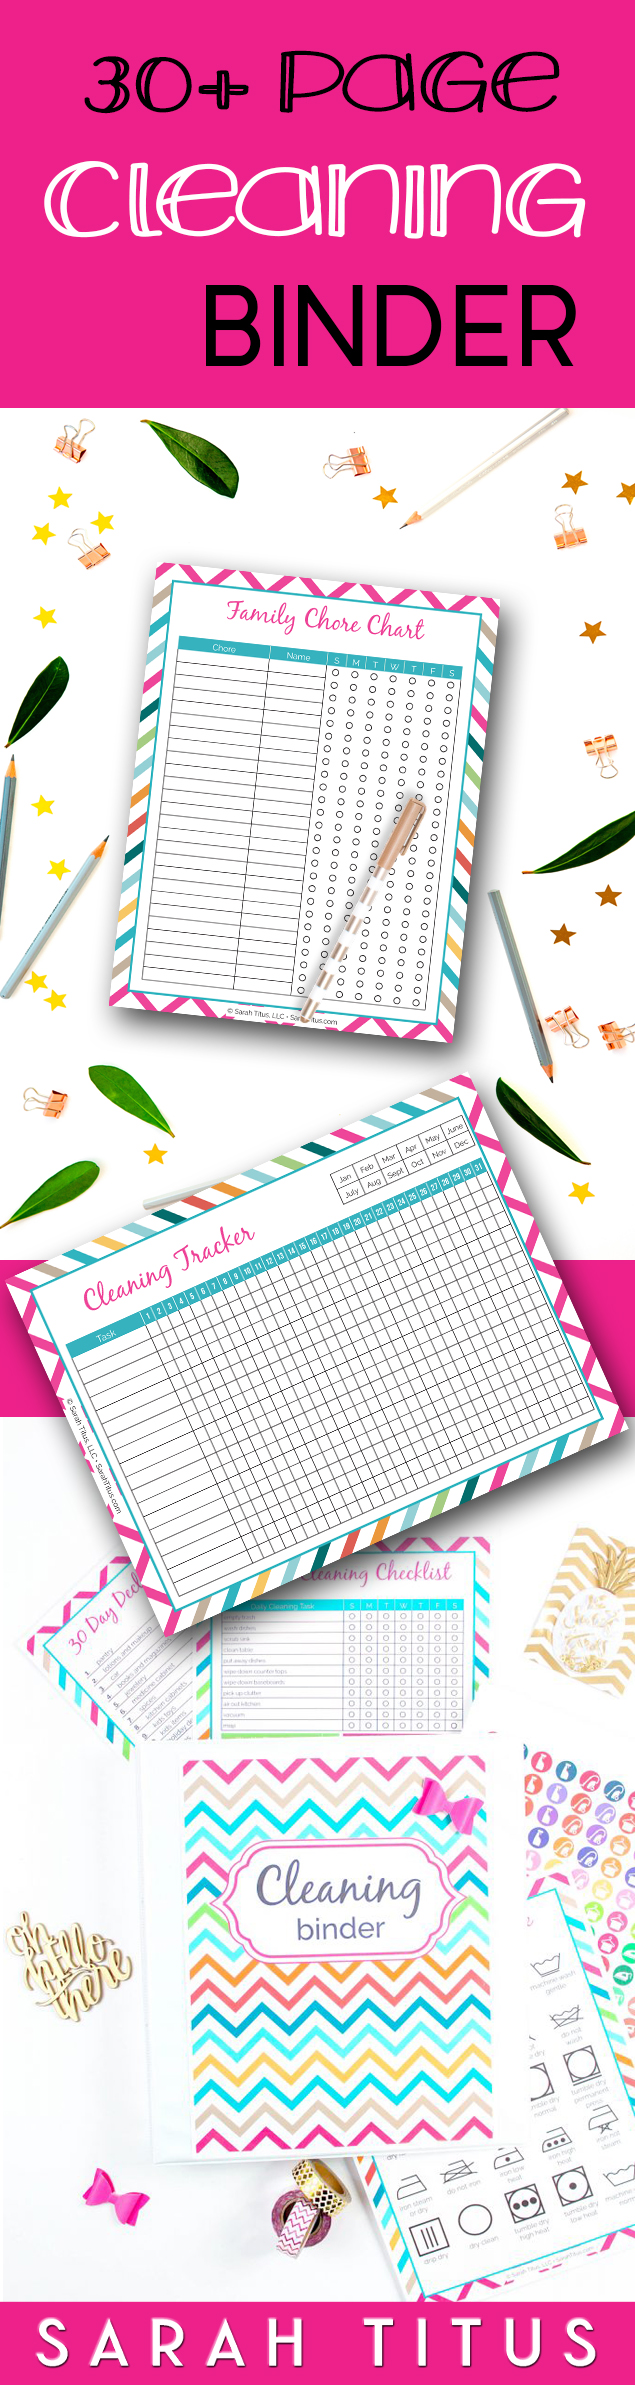 If you're an organization freak like me who just loves having everything all nice and tidy in one spot, this cleaning binder will be your saving grace! #cleaningbinder #cleaningprintables #printables #freeprintables #cleanprintable #chorechart